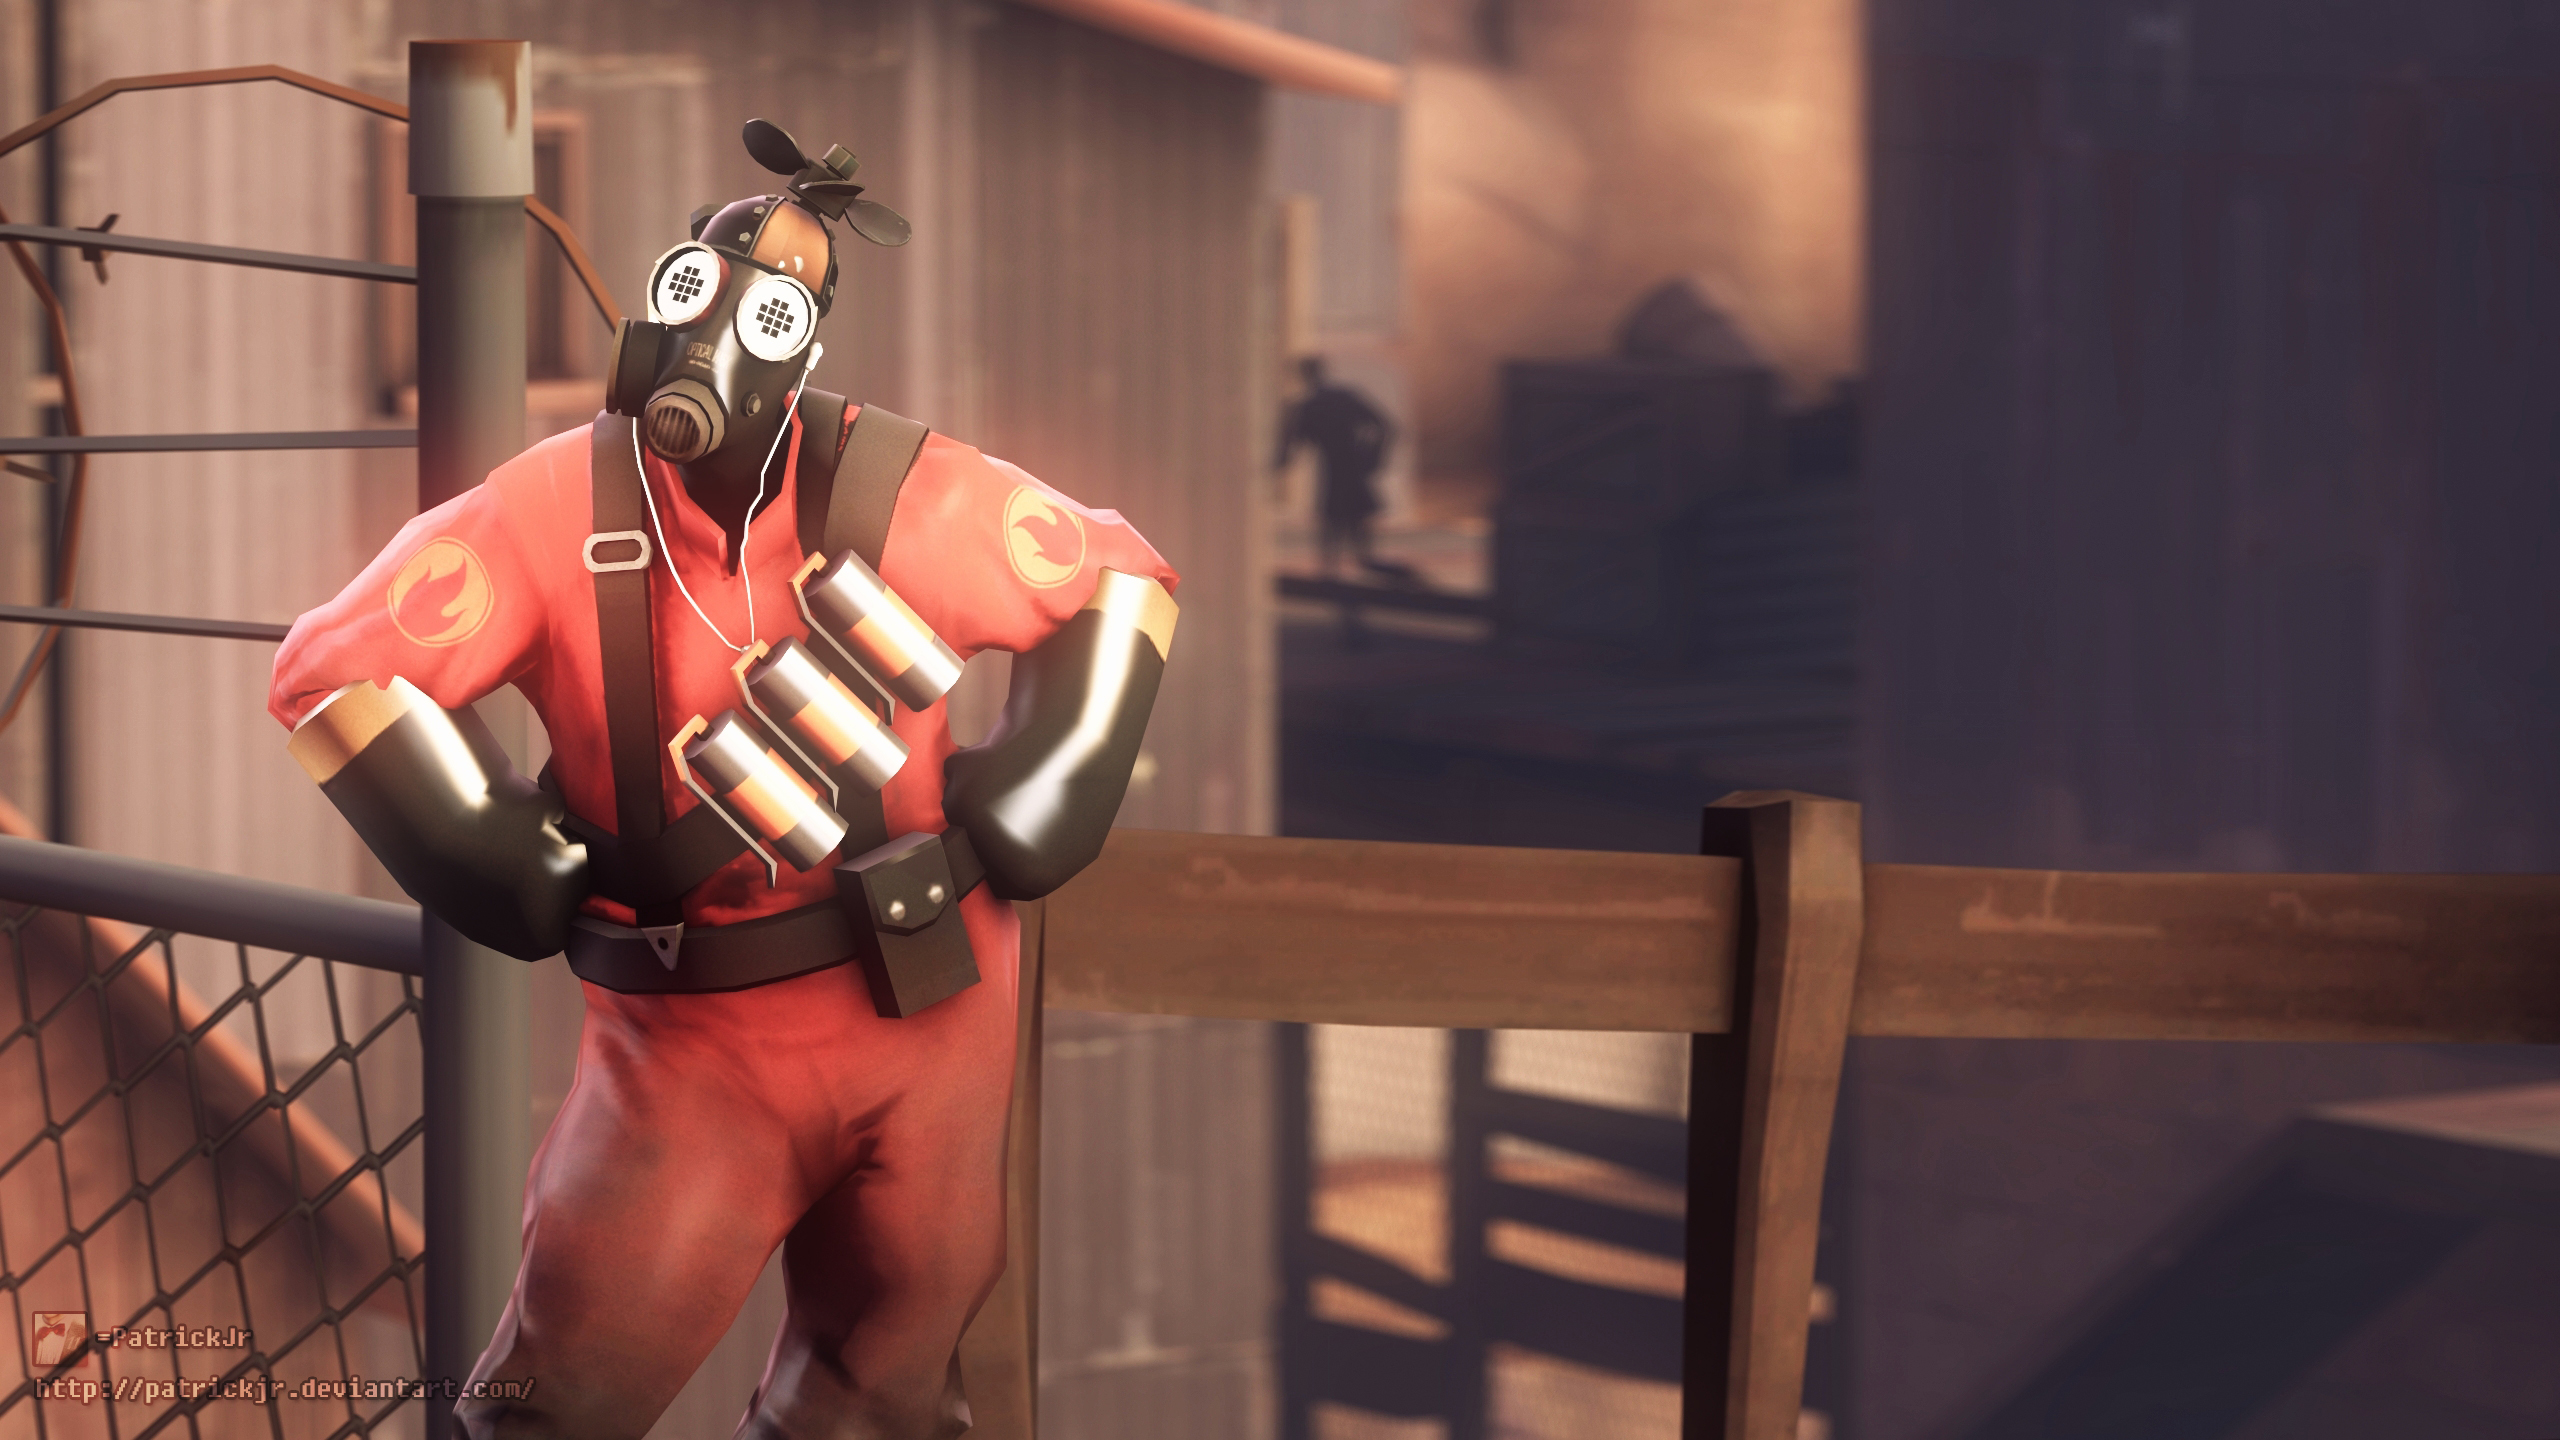 SFM Poster: The Whirly Bird Pyro by PatrickJr